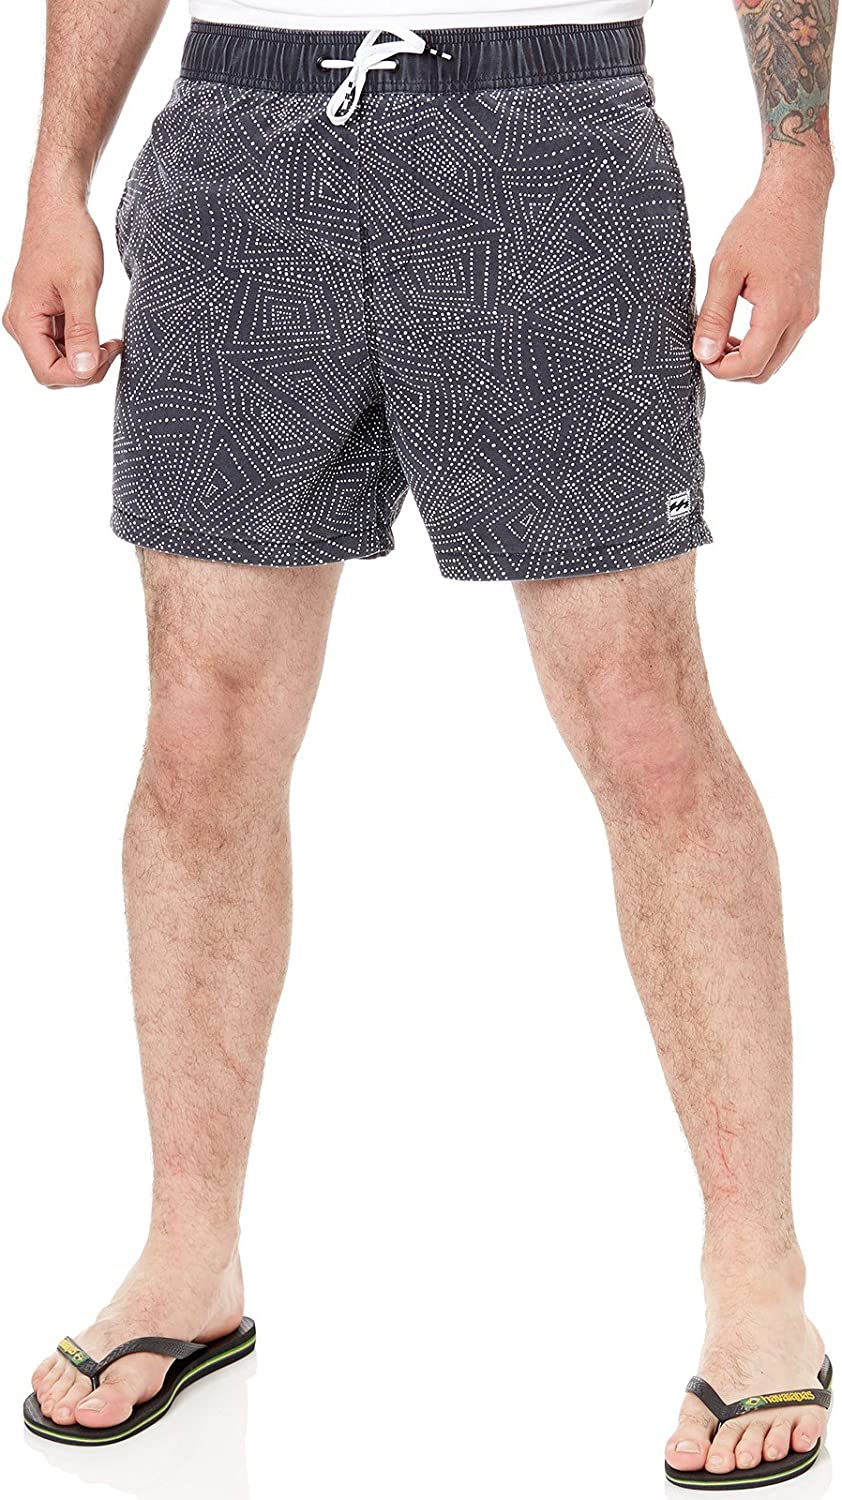 Billabong Black Sundays - 16 Inch Swimming Shorts